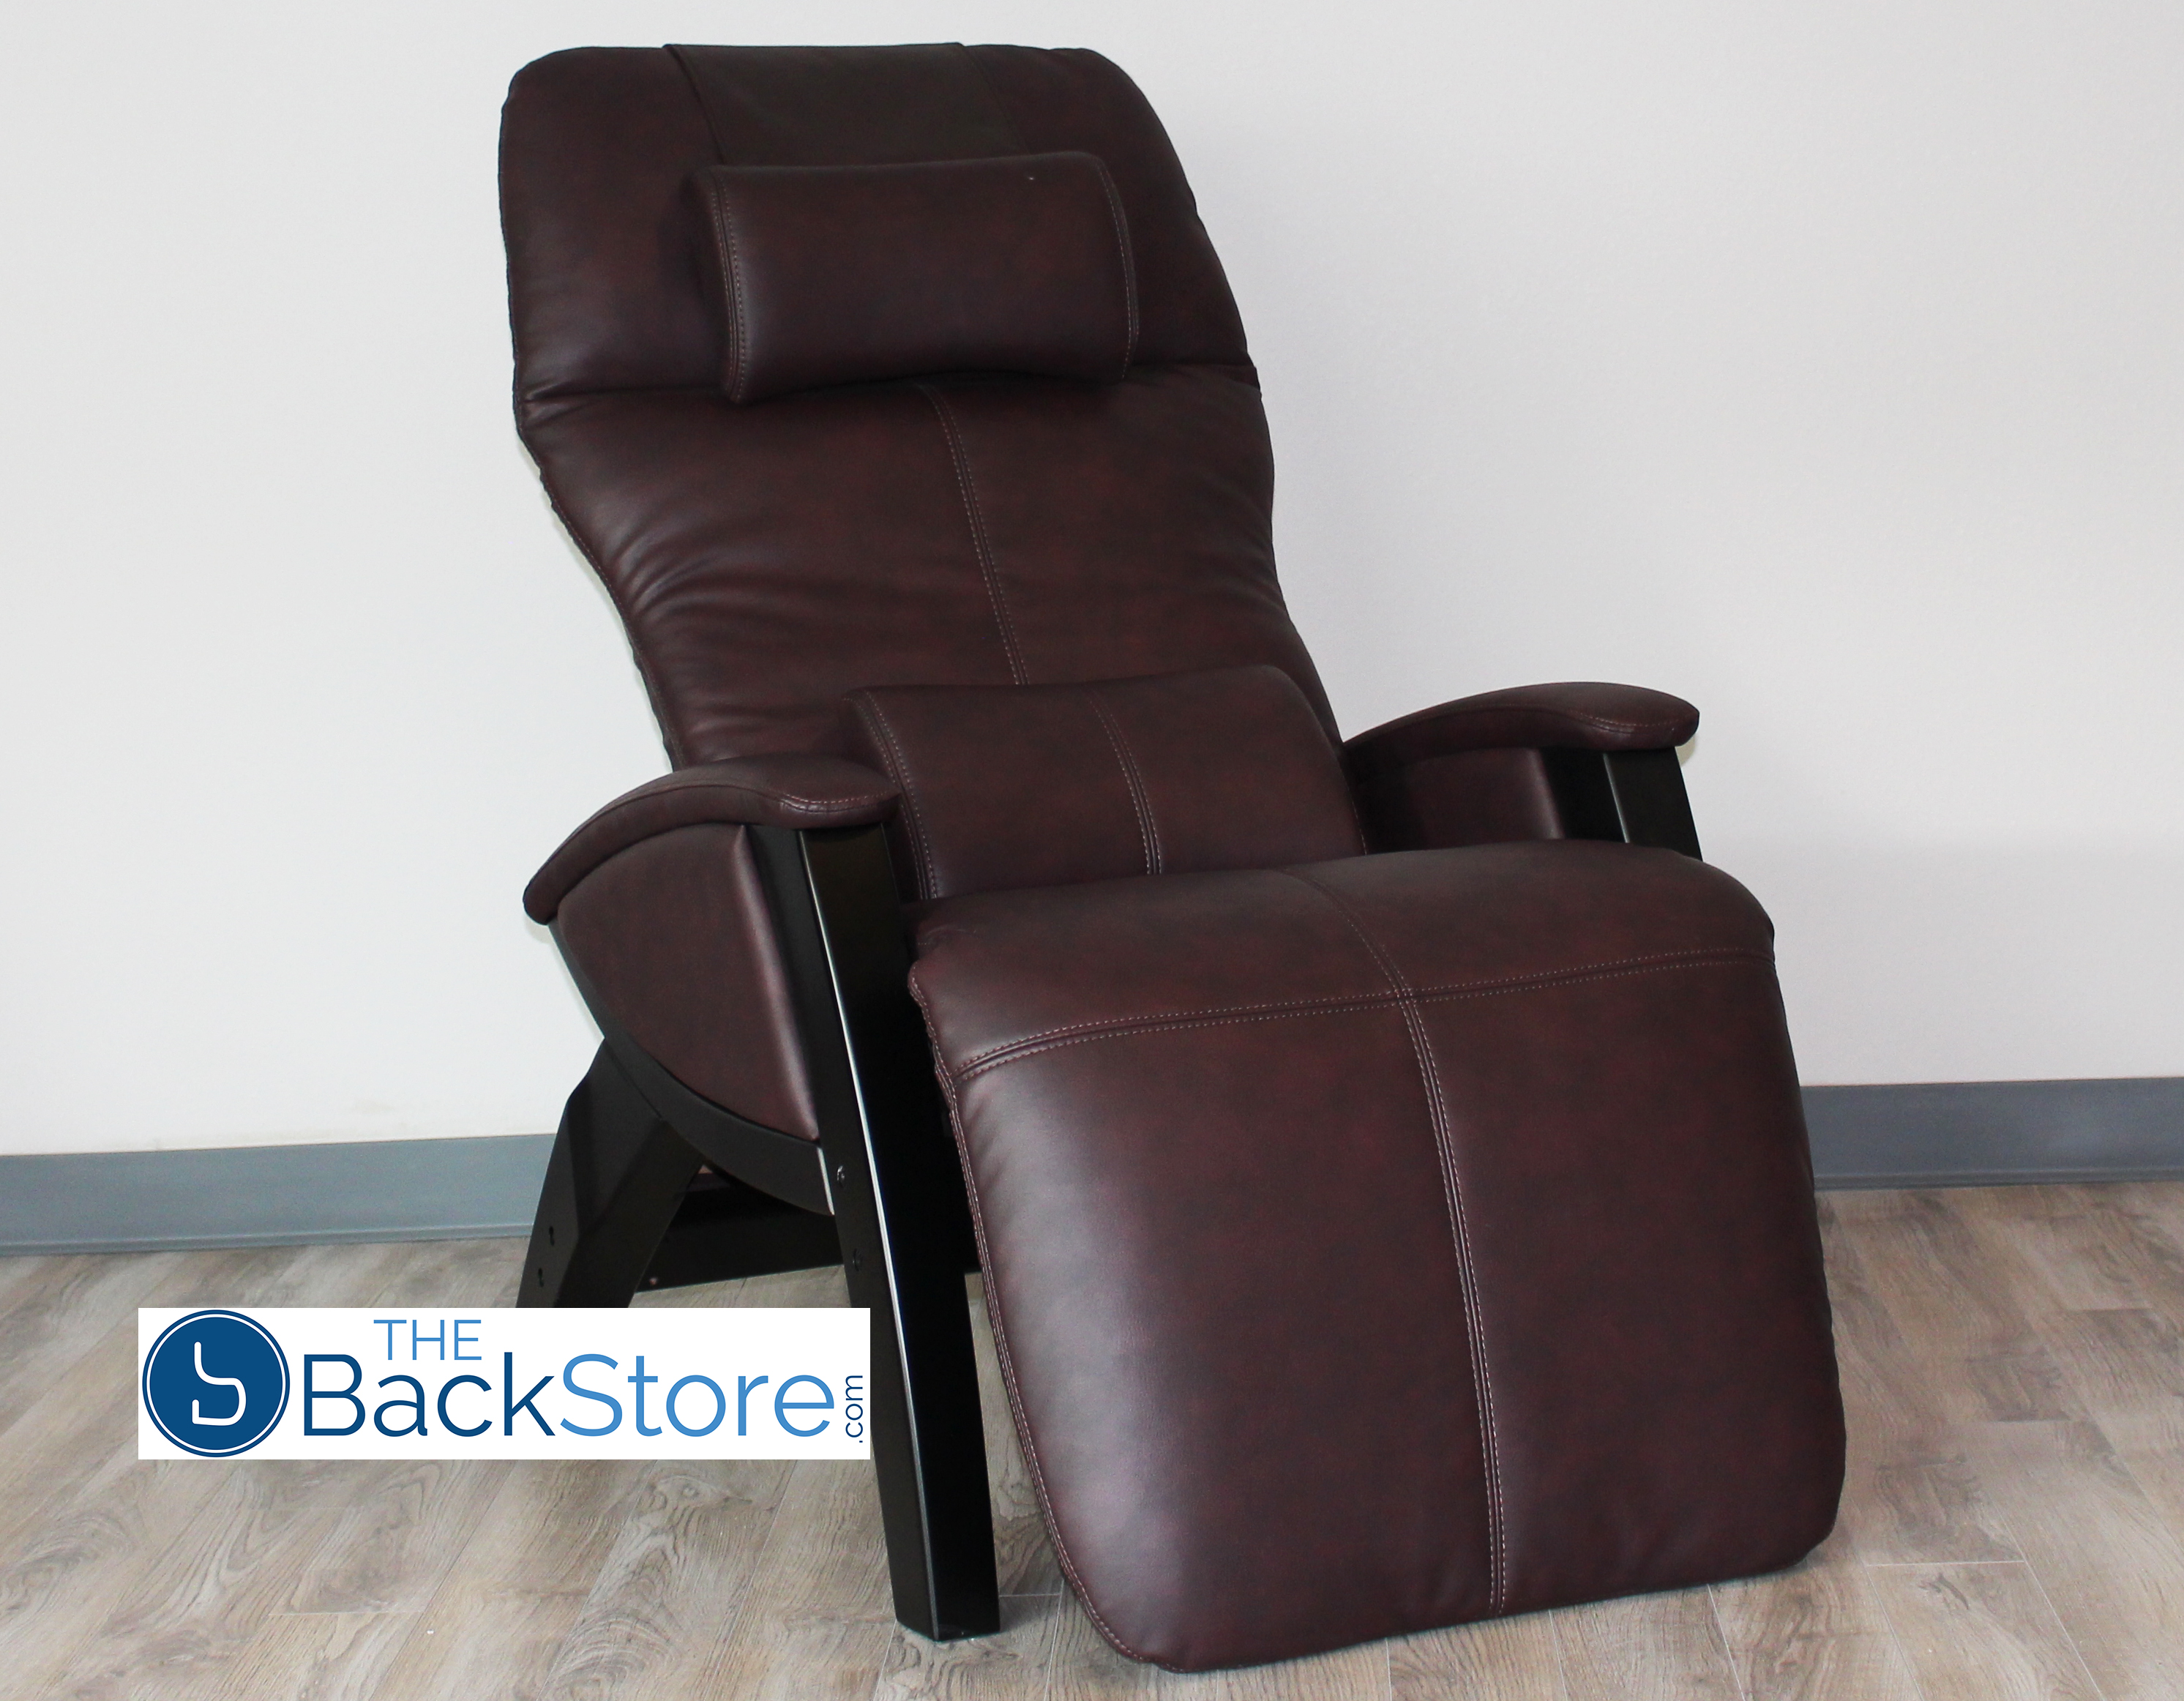 Svago Chair Cozzia Zg 6000 Power Electric Zero Anti Gravity Recliner